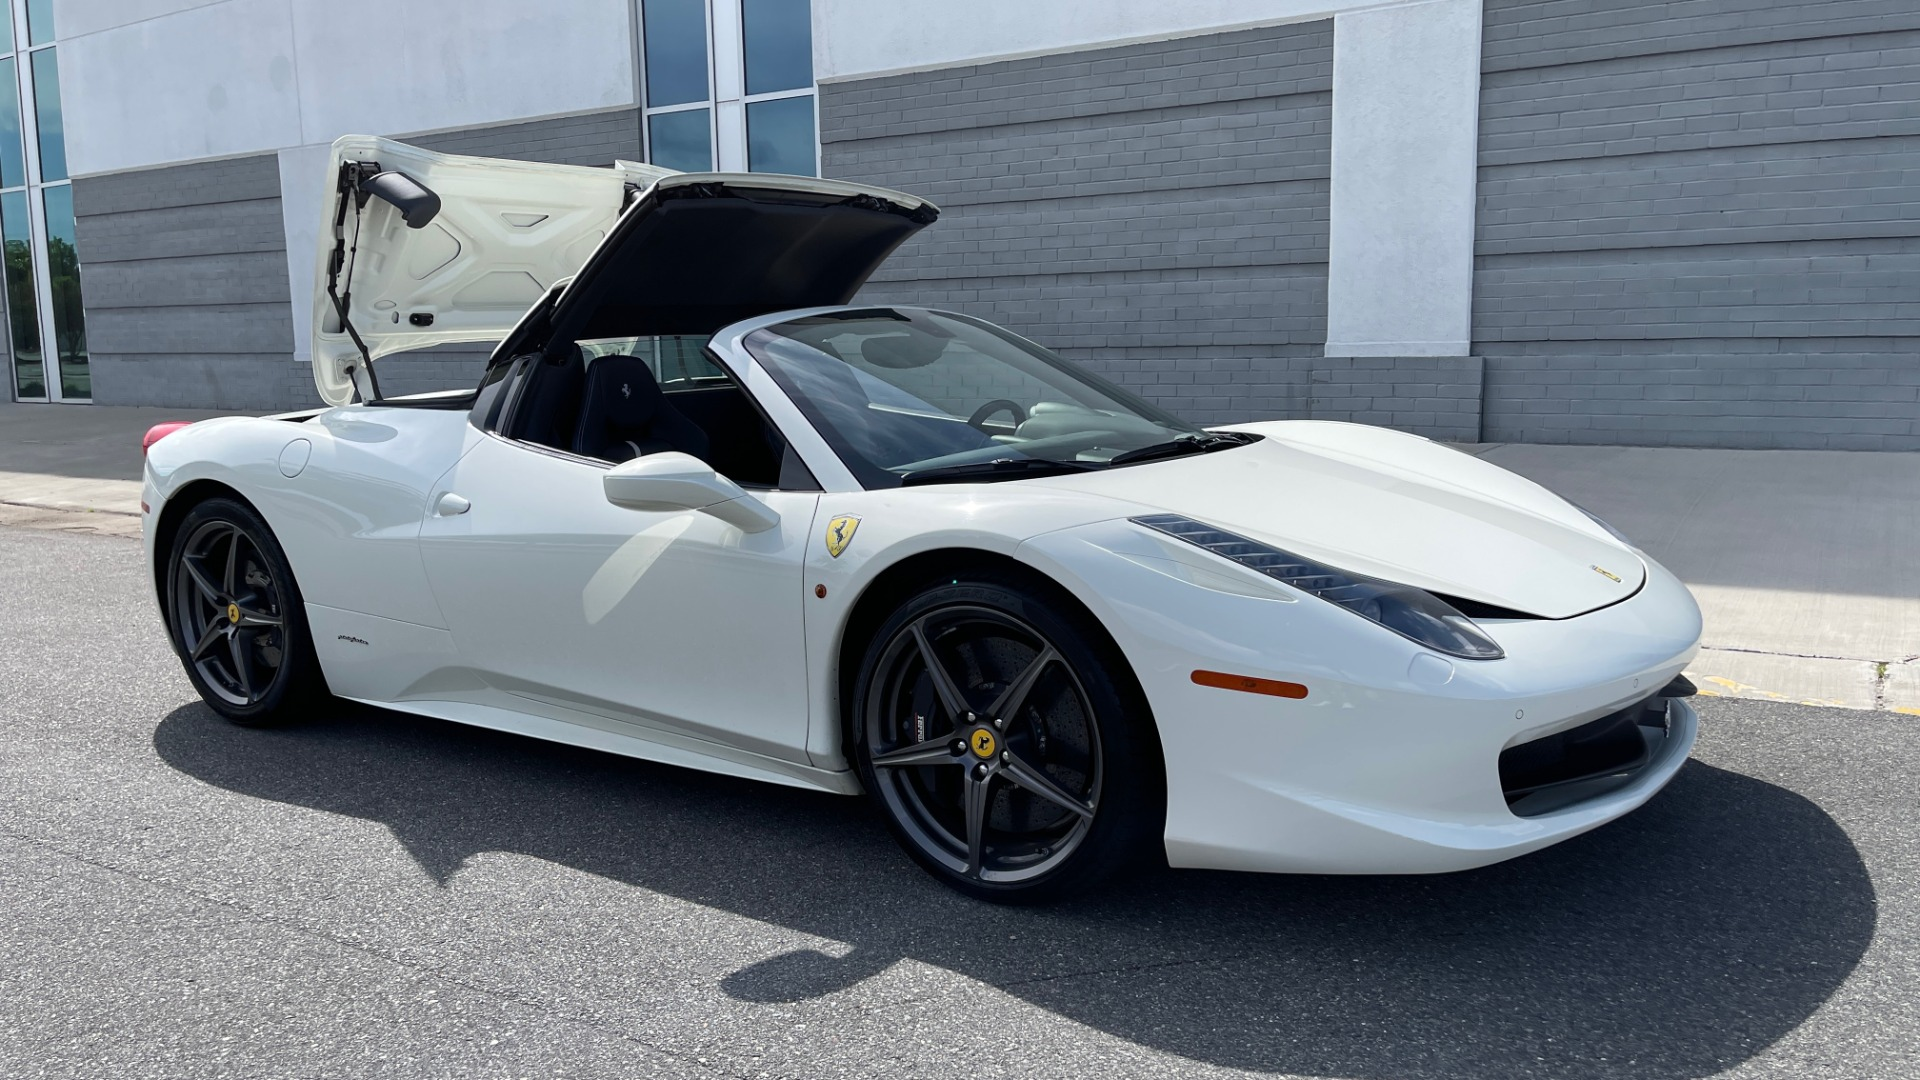 Used 2014 Ferrari 458 ITALIA SPIDER 570HP / F1 AUTO / CF SEATS / CARBON BRAKES / REARVIEW for sale $249,999 at Formula Imports in Charlotte NC 28227 9